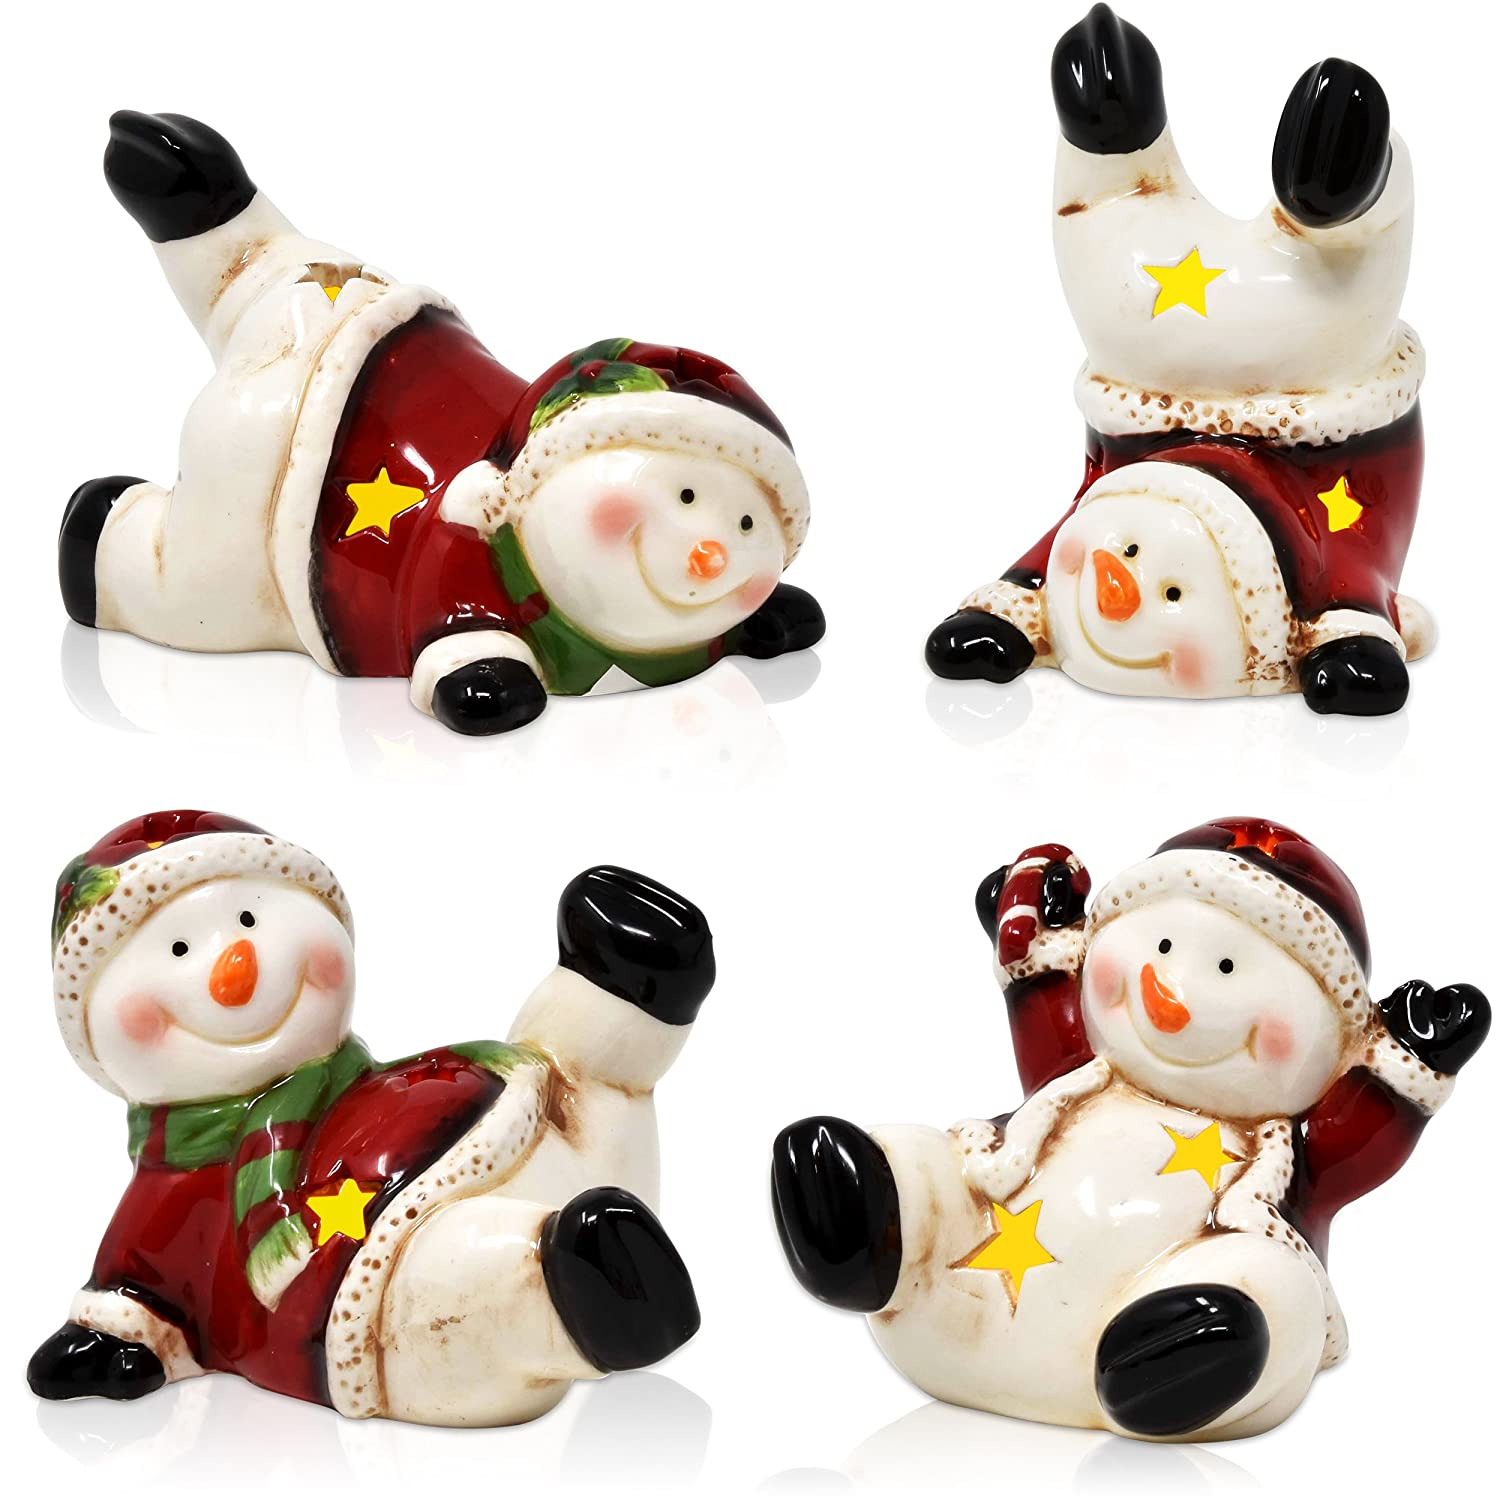 Gift Boutique Snowman Decorations Christmas- Mini 3 Set of 4 Assorted Led Light Up Winter Holiday Snowmen Figurines Table Decor